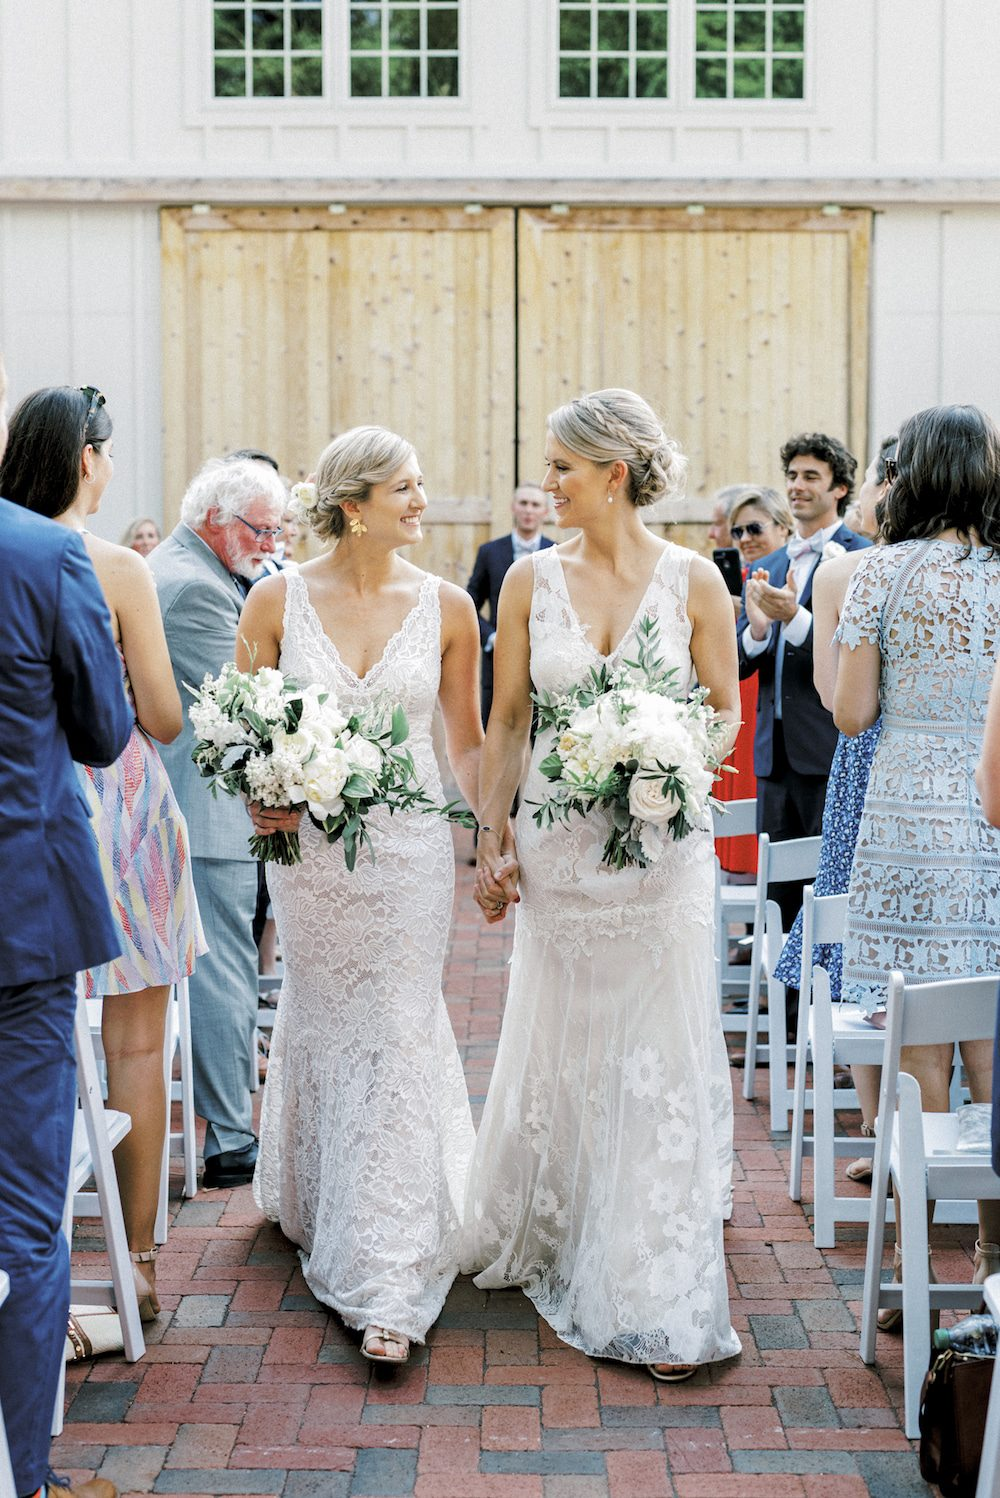 Paige and Kristine walk back down the aisle at The Barn of Chapel Hill at Wild Flora Farm as a married couple.